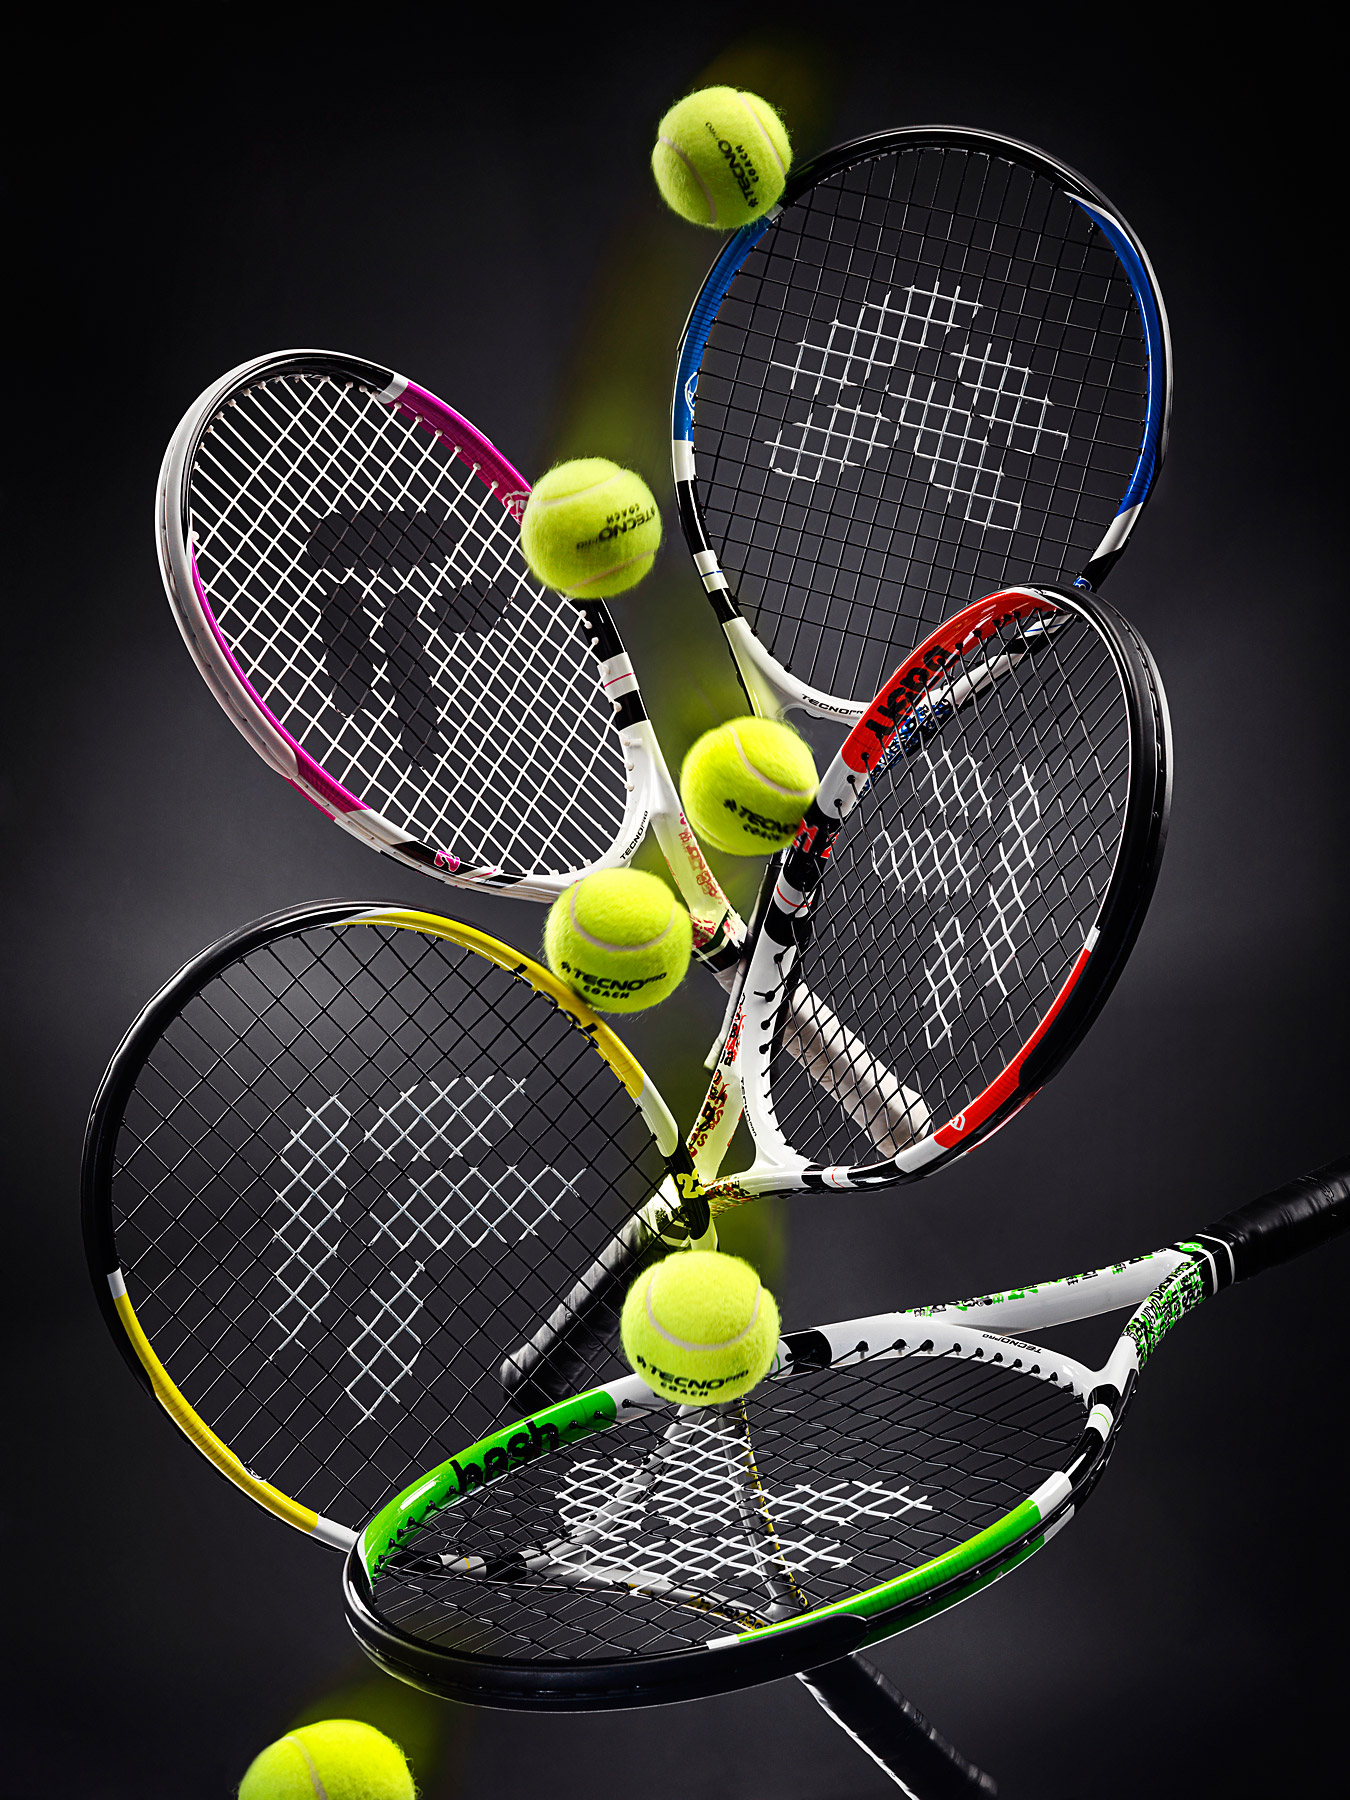 Techo Pro Bash tennis rackets with balls